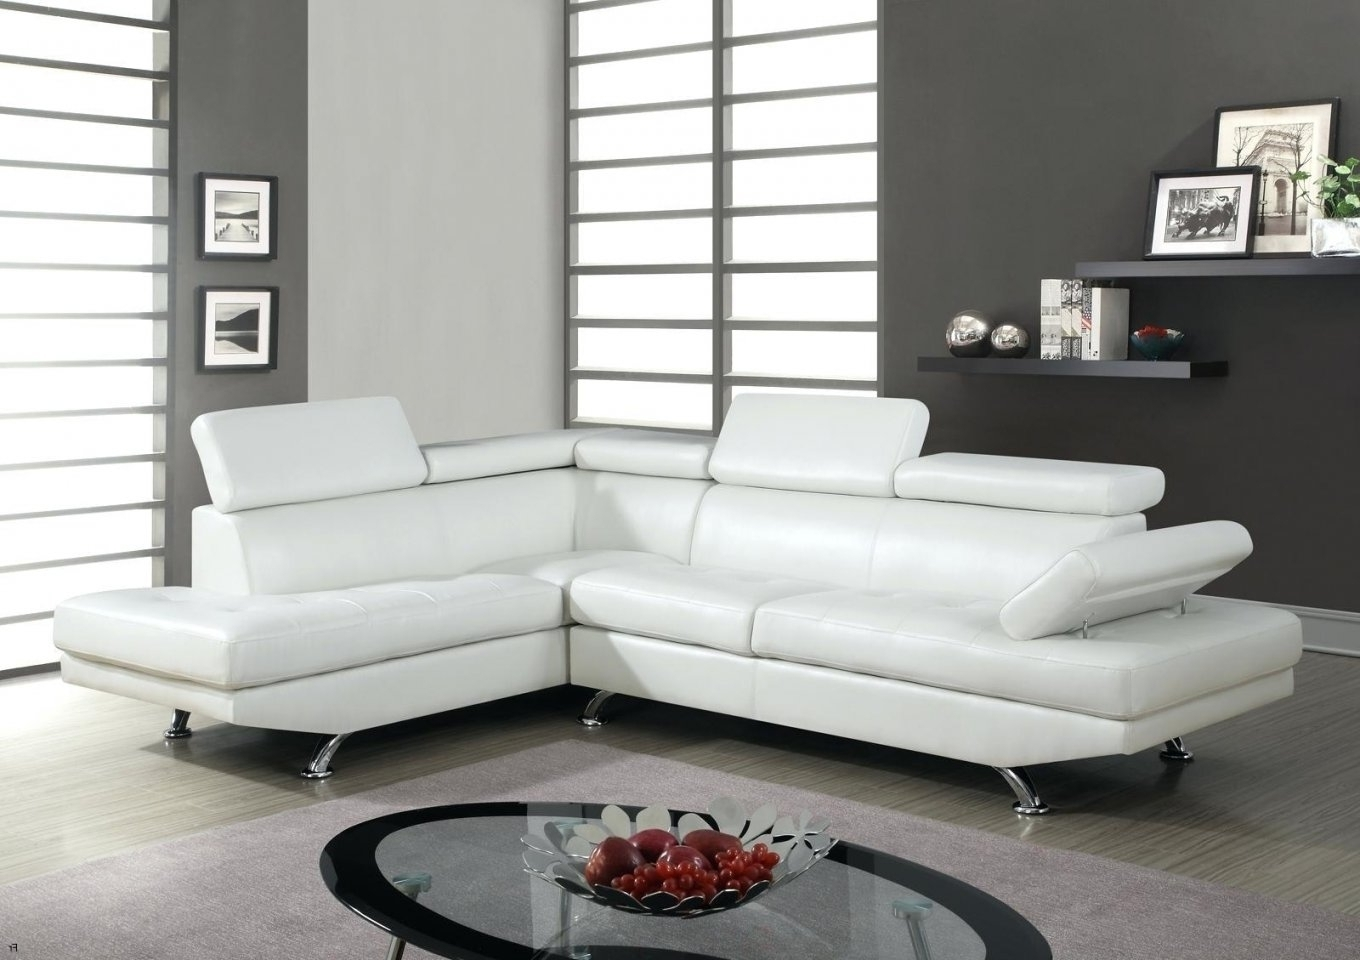 20 Collection of Raymour And Flanigan Sectional Sofas